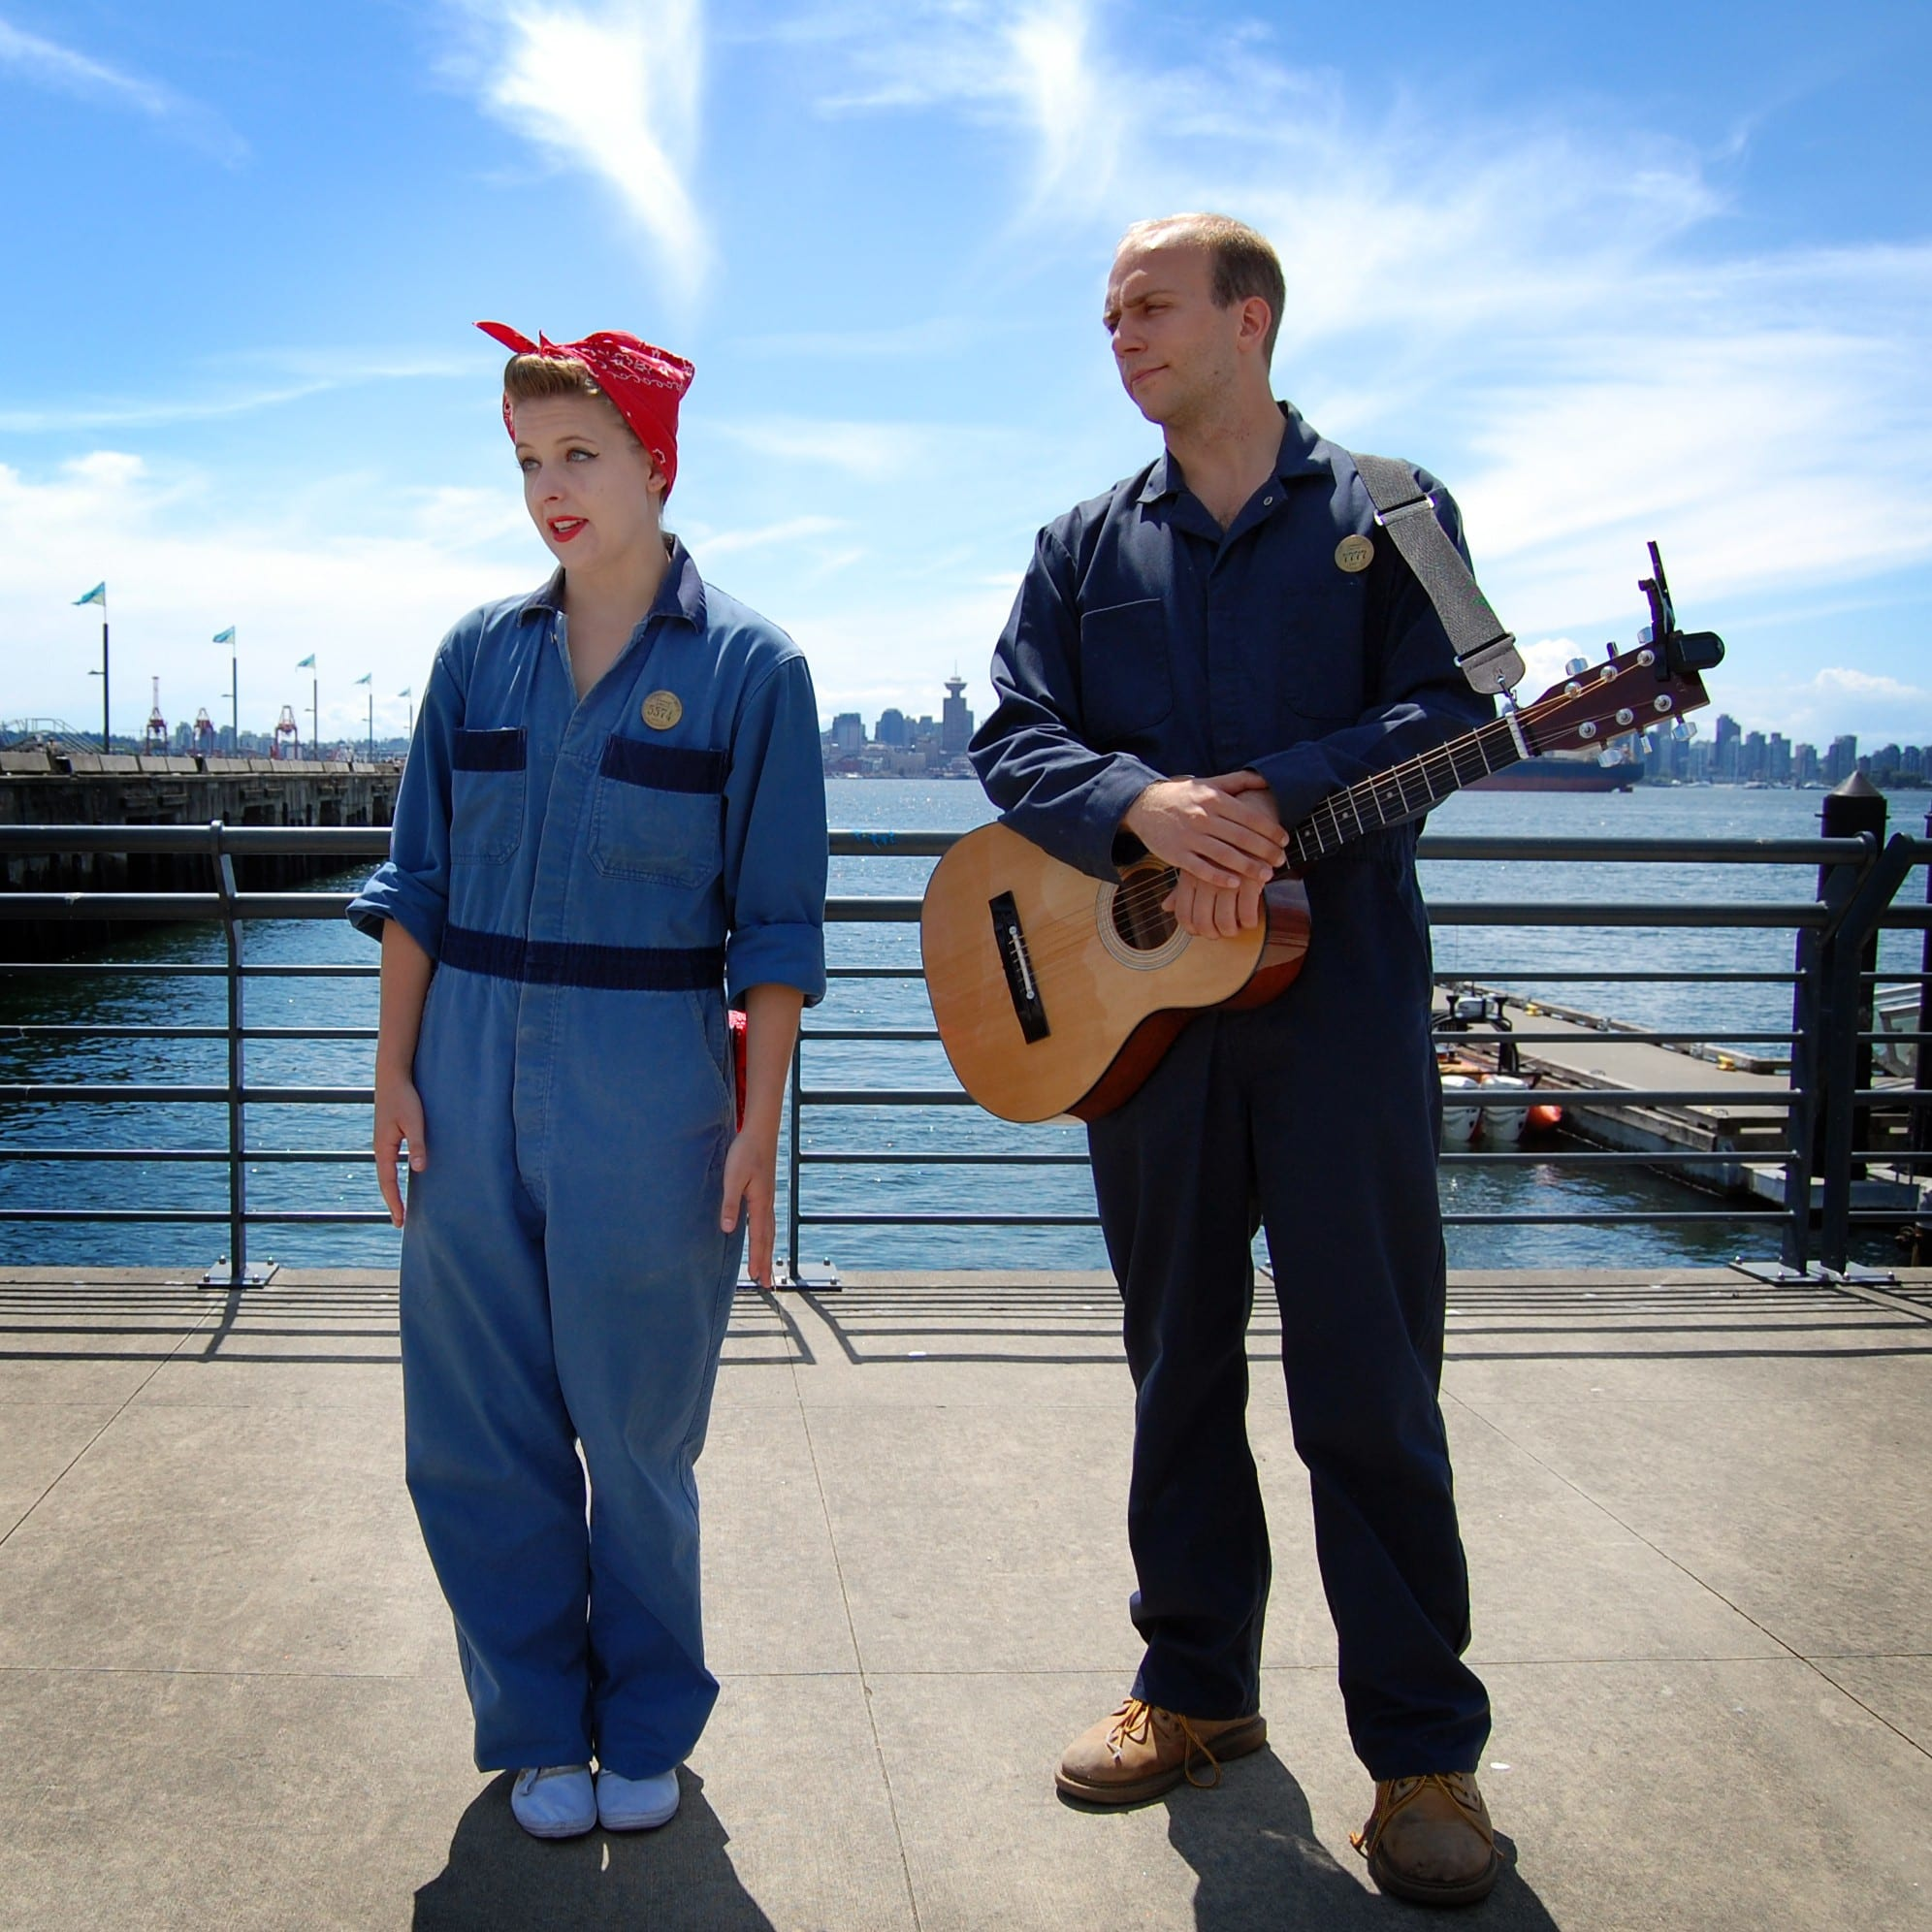 Join Shipyard Sam & Sal for Free Waterfront Tours this Summer